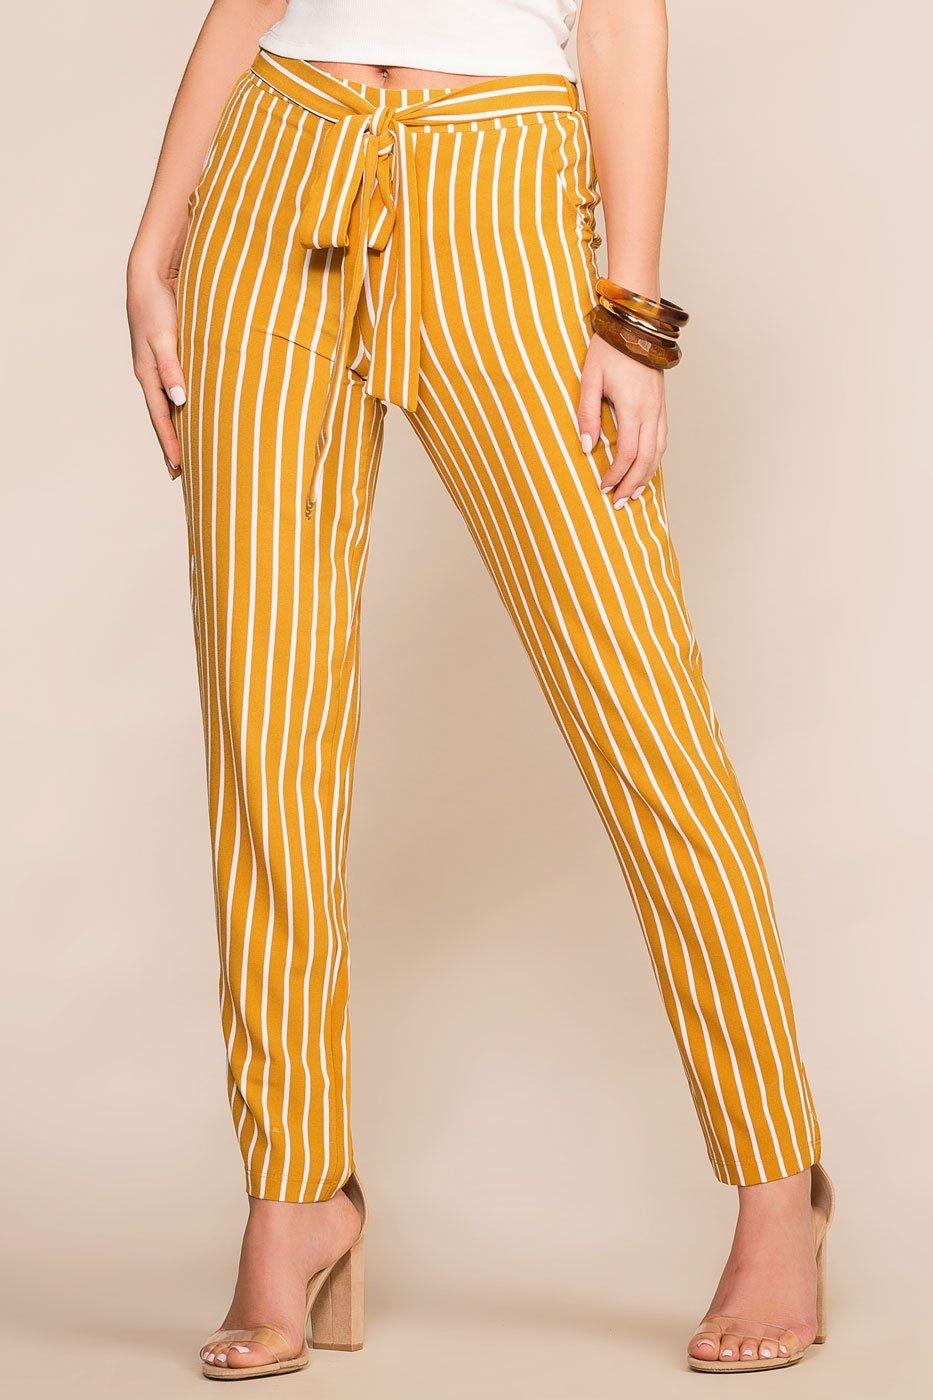 Priceless | Mustard | Striped | High Waisted | Tie Pants | Womens